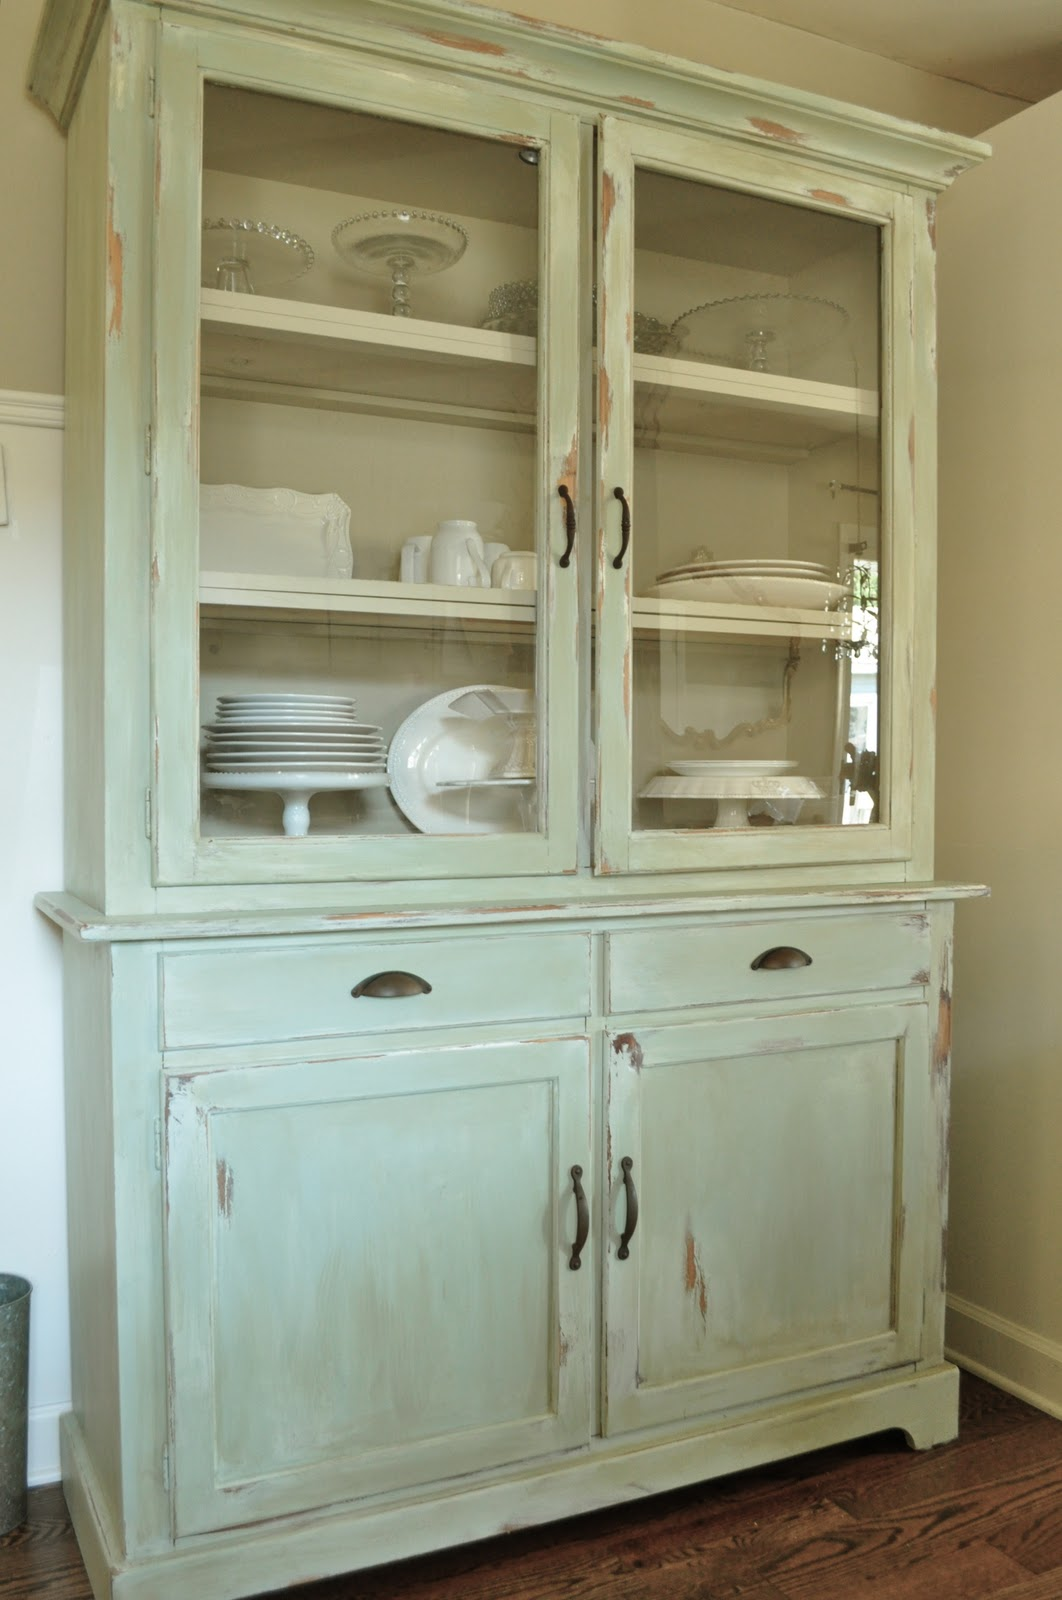 charming How To Make Cabinets Look Old Part - 8: how to make a new peice of furinture look old with paint and distressing